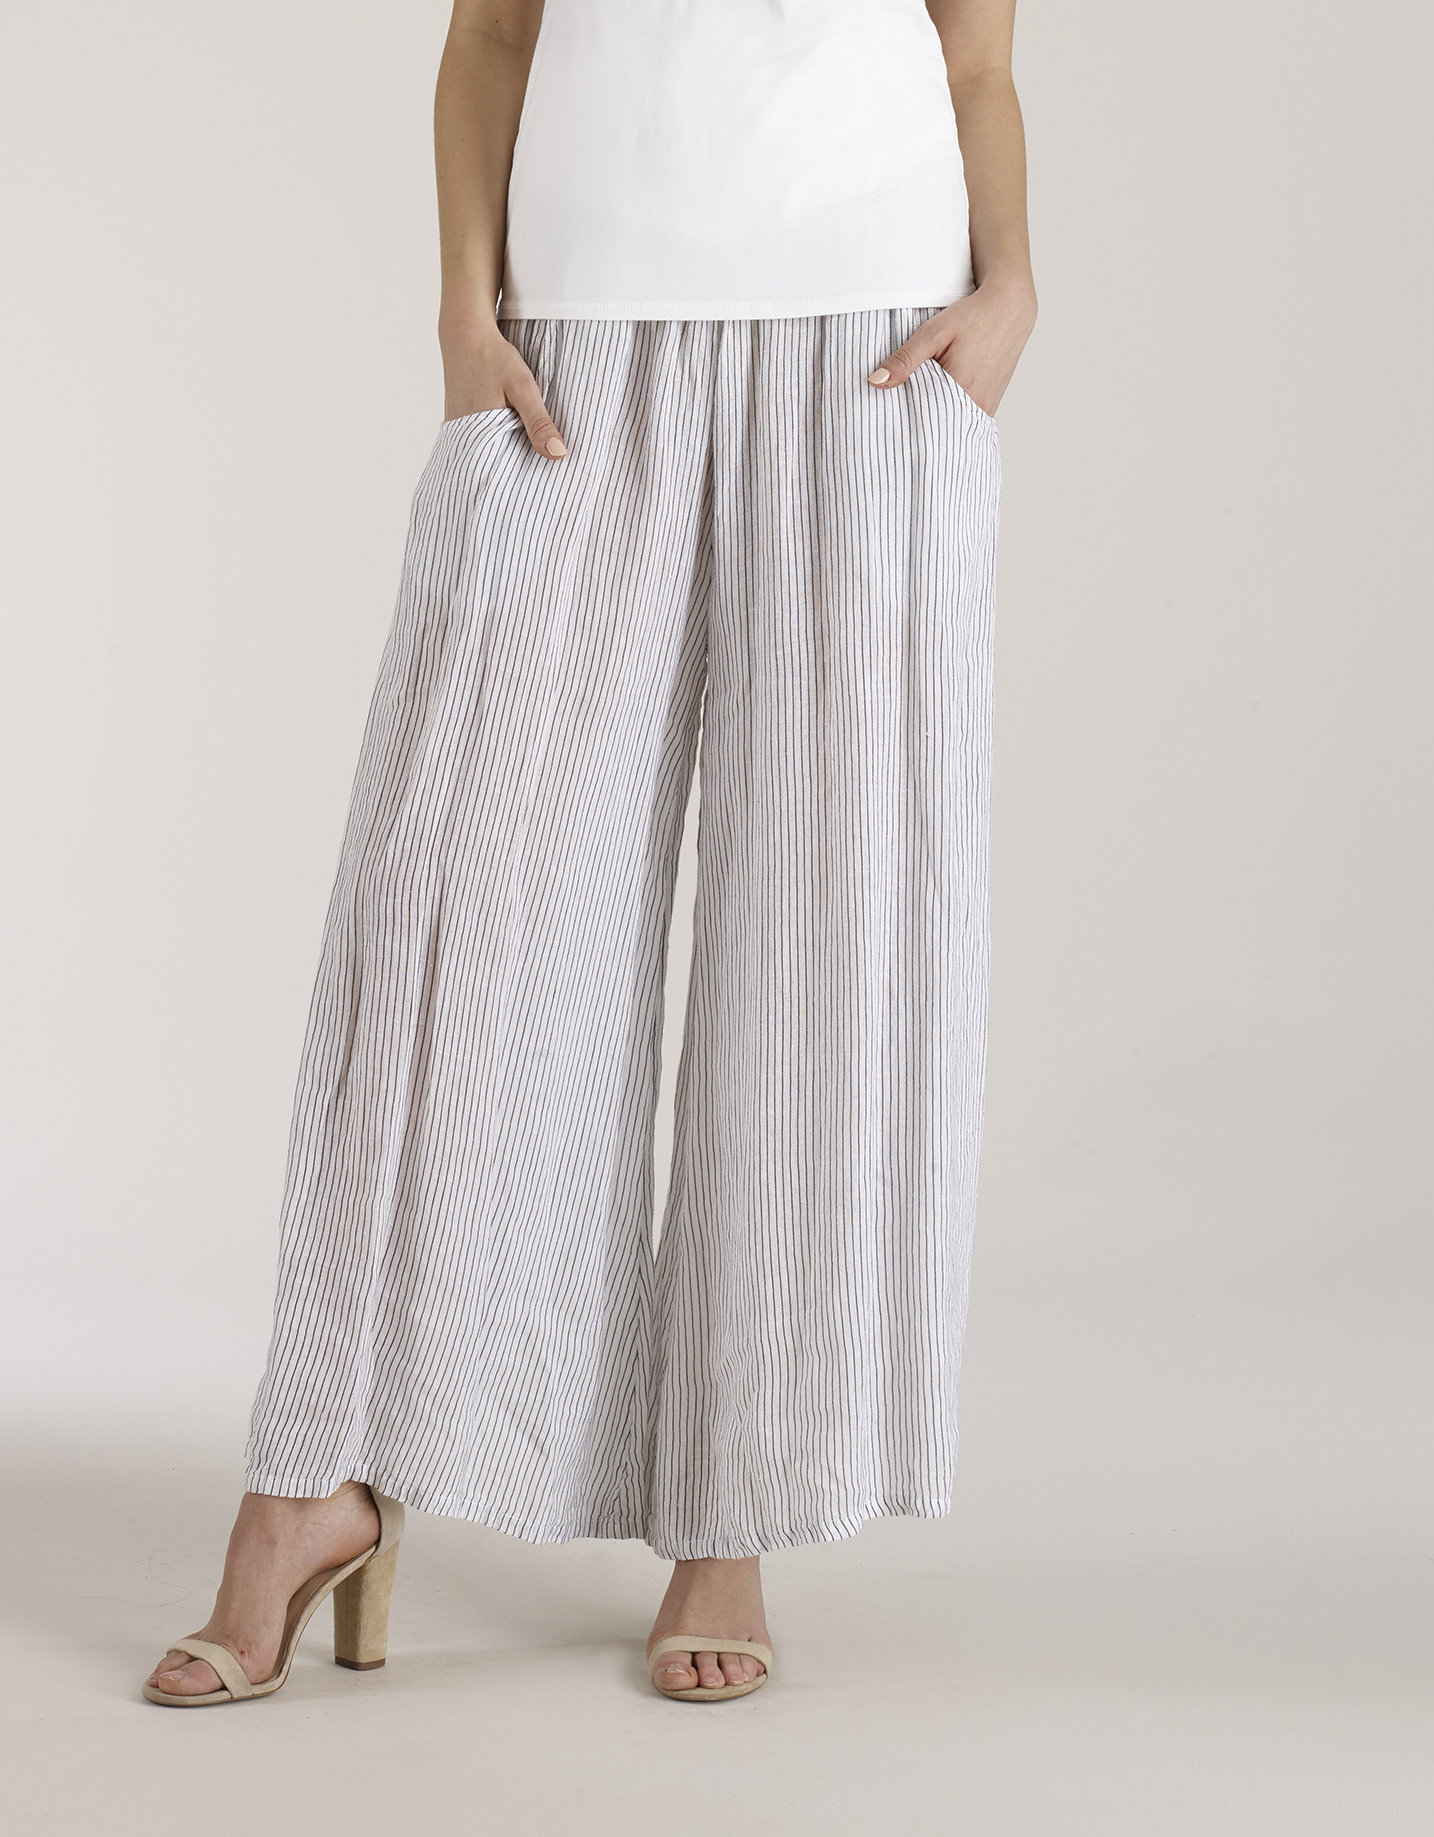 Luna Luz: Stripe Wide Leg Linen Pant (Ship Immed, 1 Left!) LL_D733_N